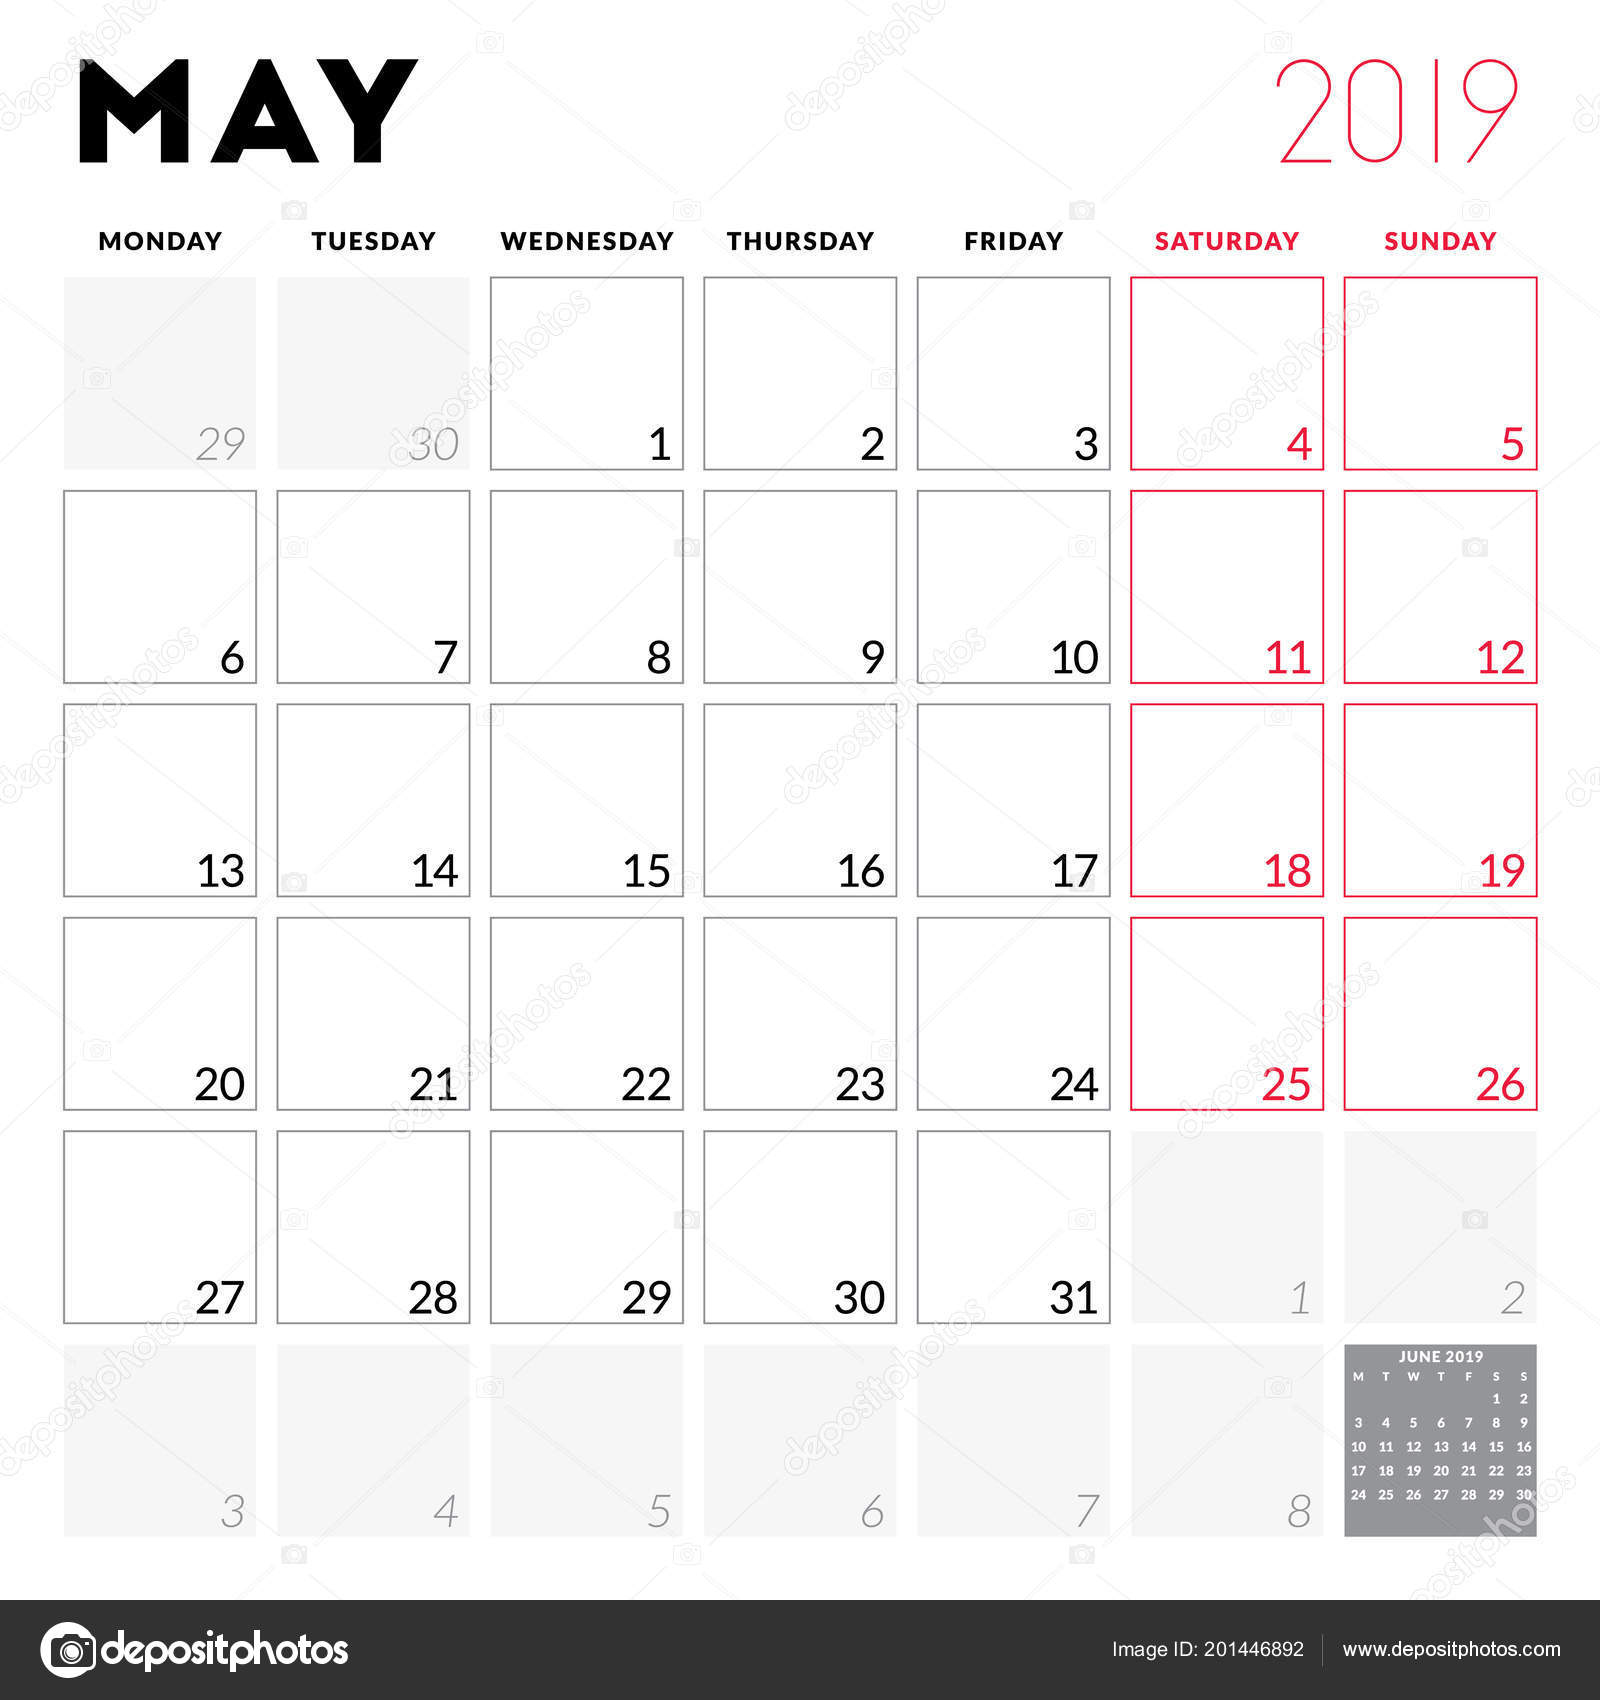 Calendar Planner May 2019 Week Starts Monday Printable Vector